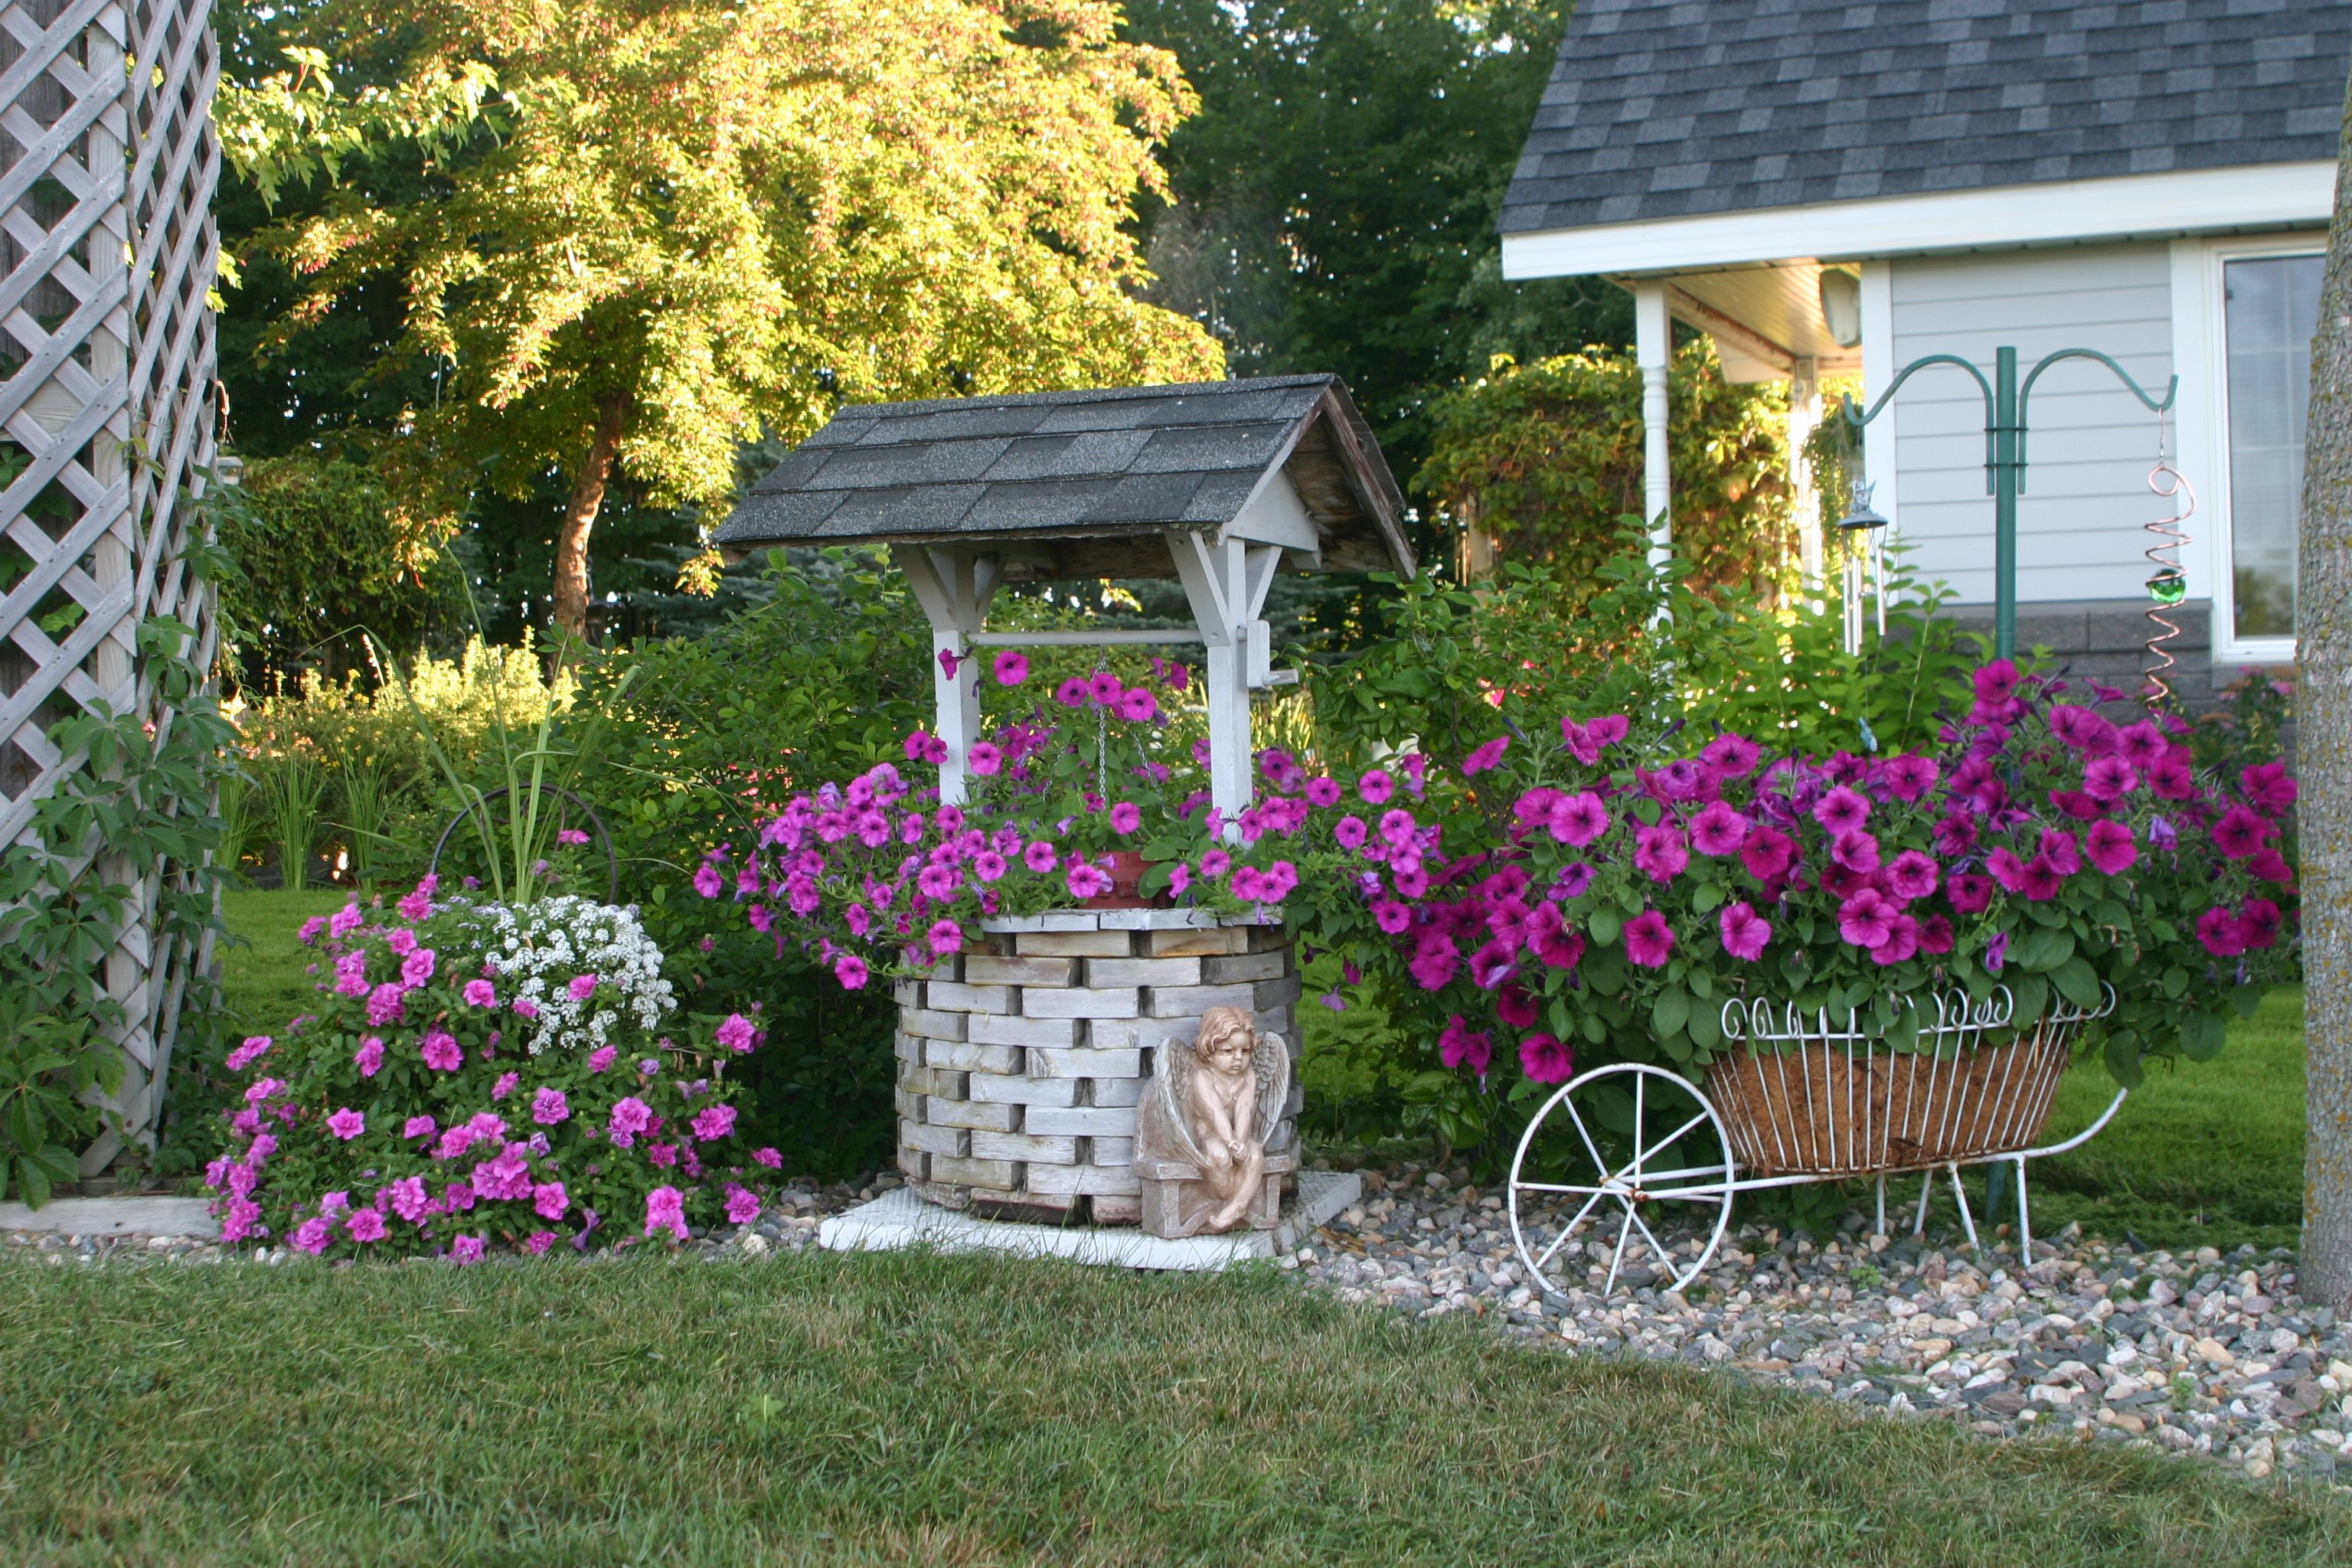 My Wishing Well Garden (With images) | Wishing well garden ... on My Garden Outdoor Living id=65041